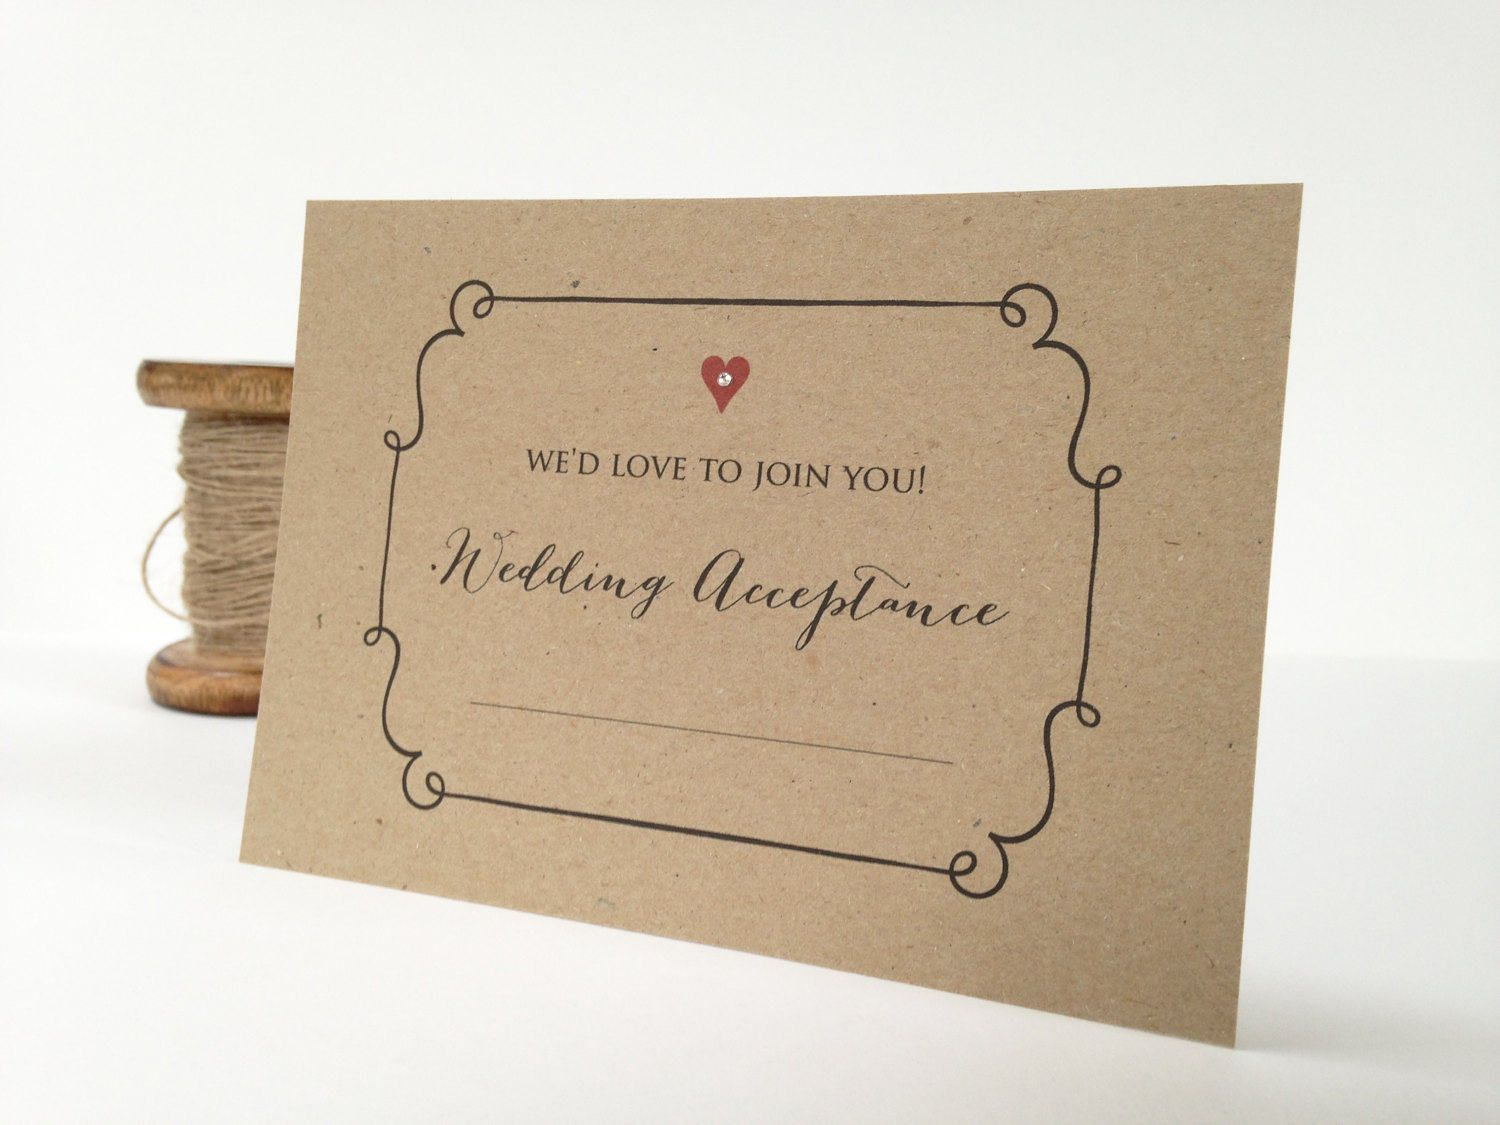 Wedding Acceptance Card Wedding Reply Card Rsvp Card Etsy Wedding Acceptance Card Wedding Reply Cards Reply Cards